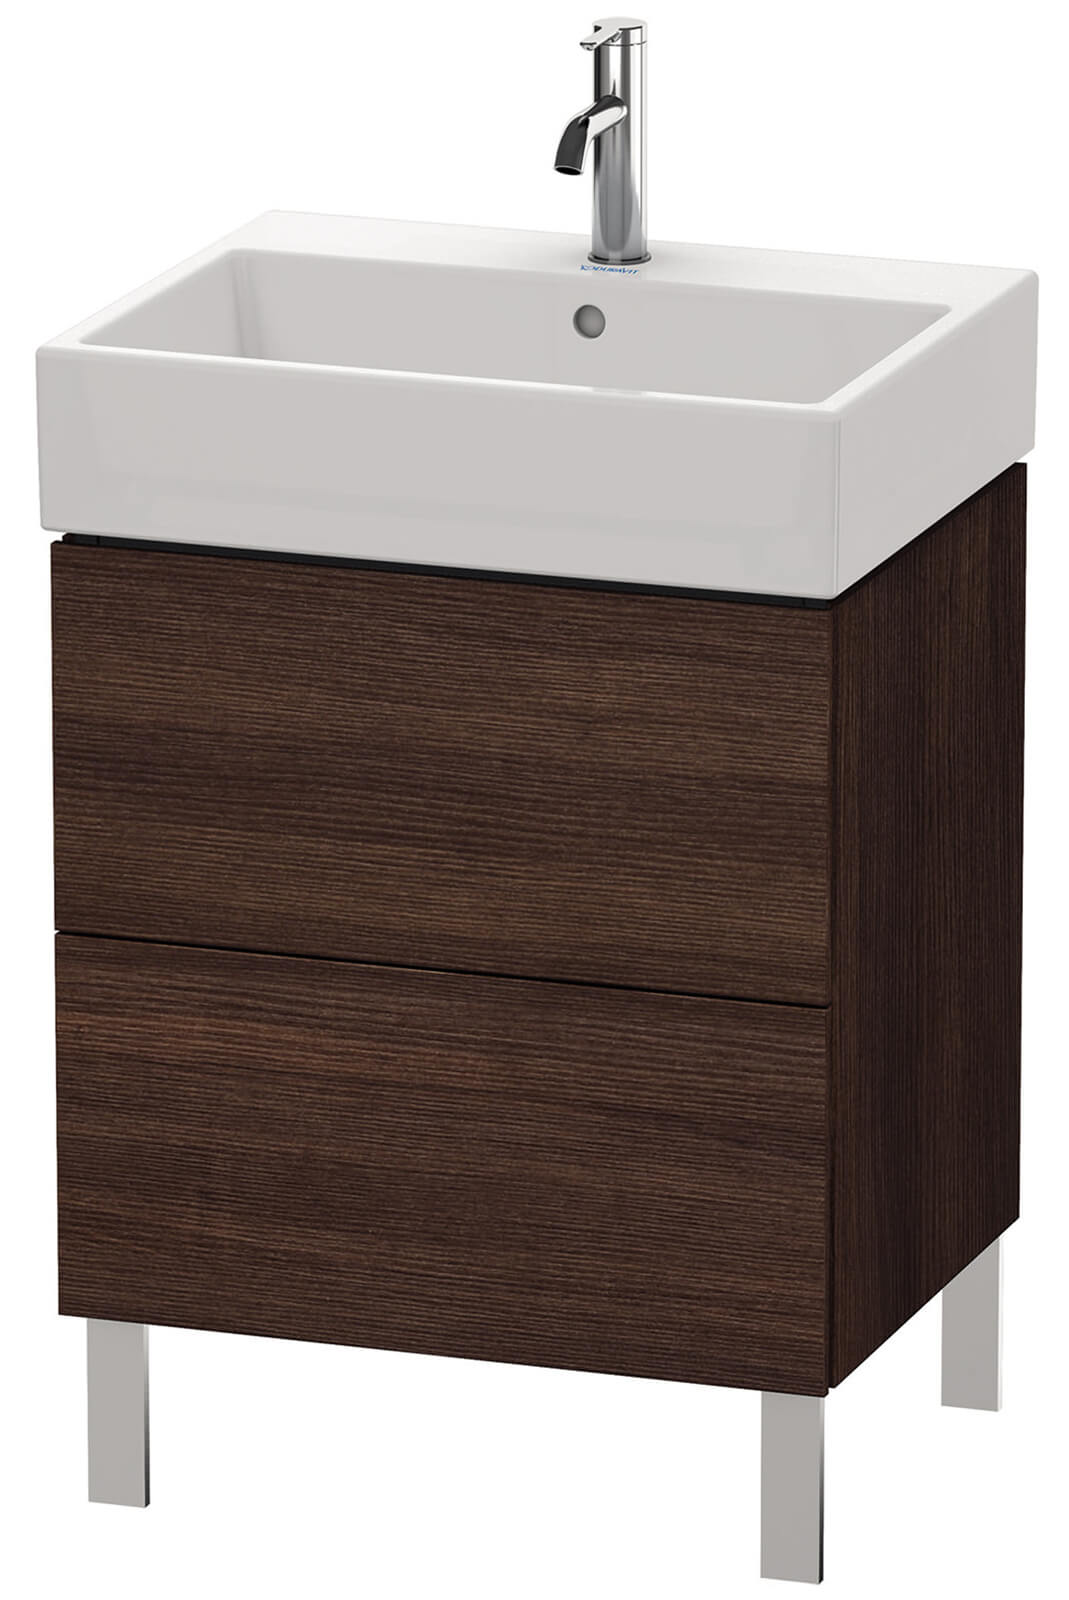 duravit l cube 584mm floor standing vanity unit with vero air basin. Black Bedroom Furniture Sets. Home Design Ideas